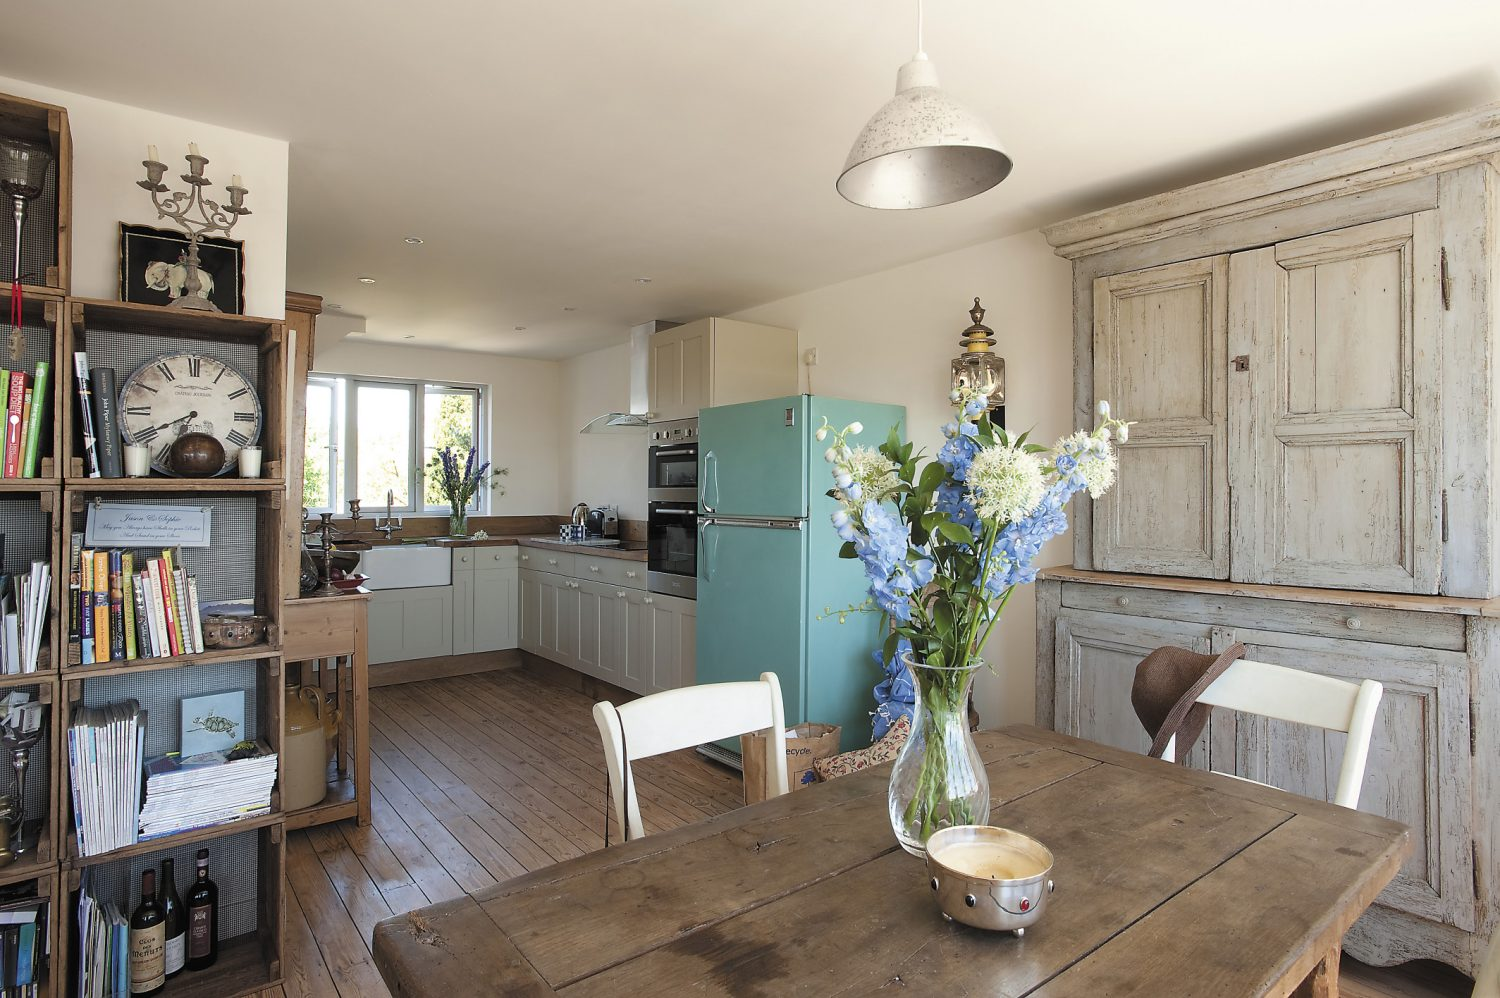 The kitchen units were built by Patrick Osborne and Sons and painted Farrow & Ball's Old White